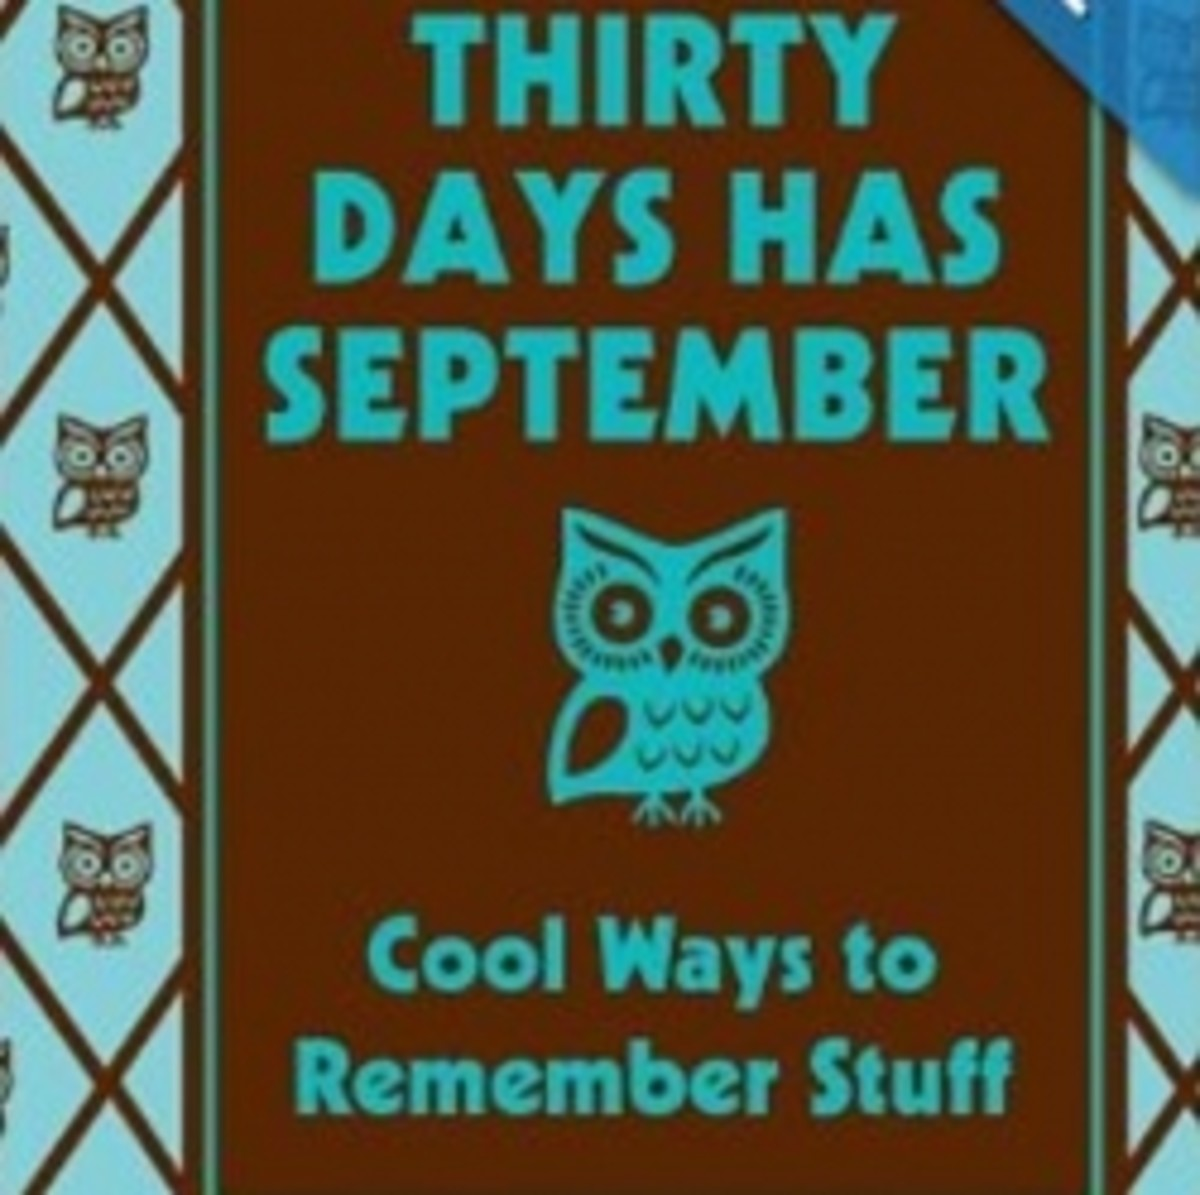 Photo Credit: Amazon.com - This book is featured below and can be purchased from Amazon. I still say this rhyme to remember how many days in each month.